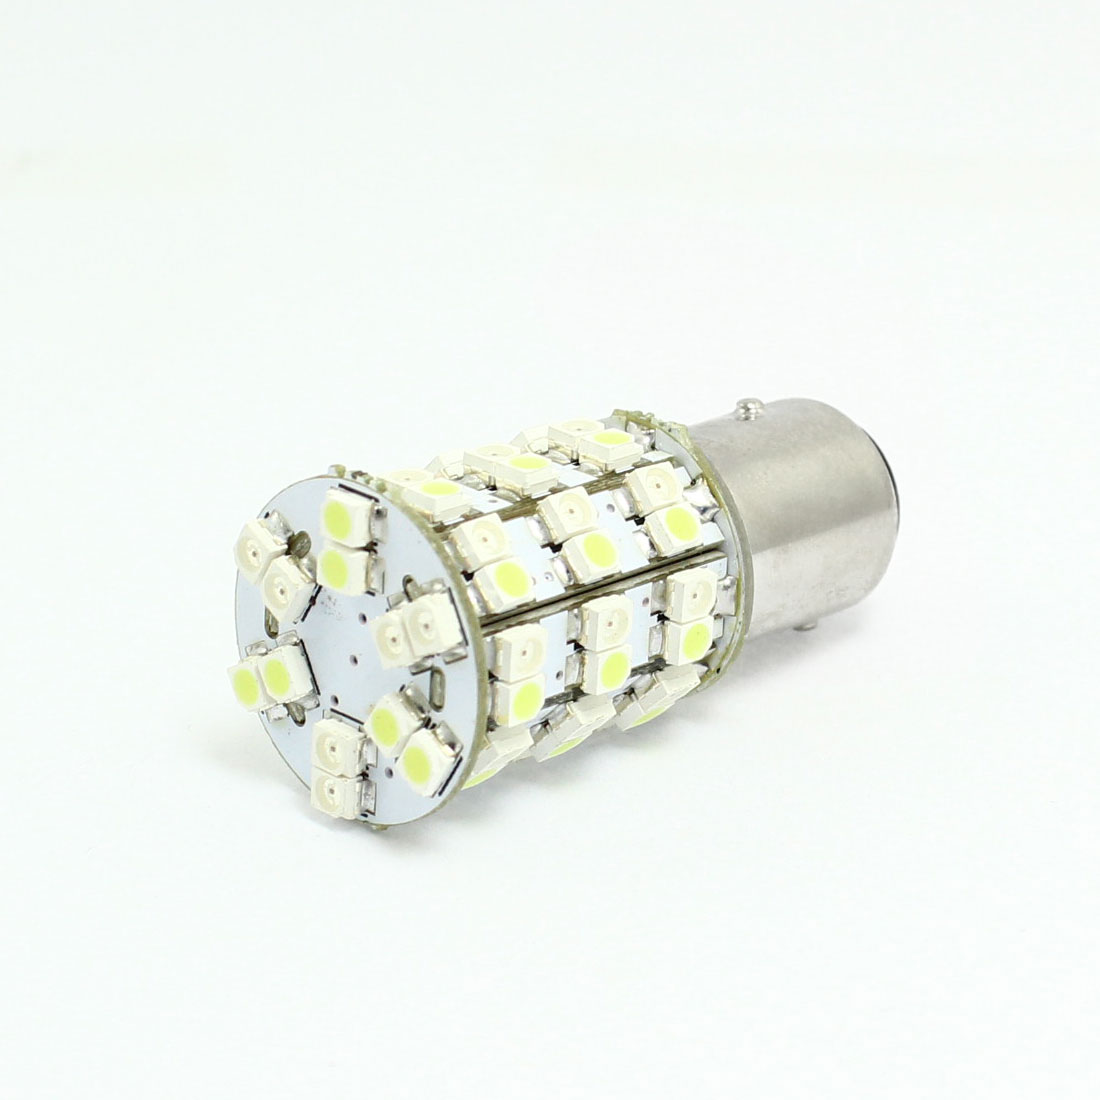 1157 Yellow White 60 LED 1210 SMD Bulb Braking Light Replacement for Vehicle